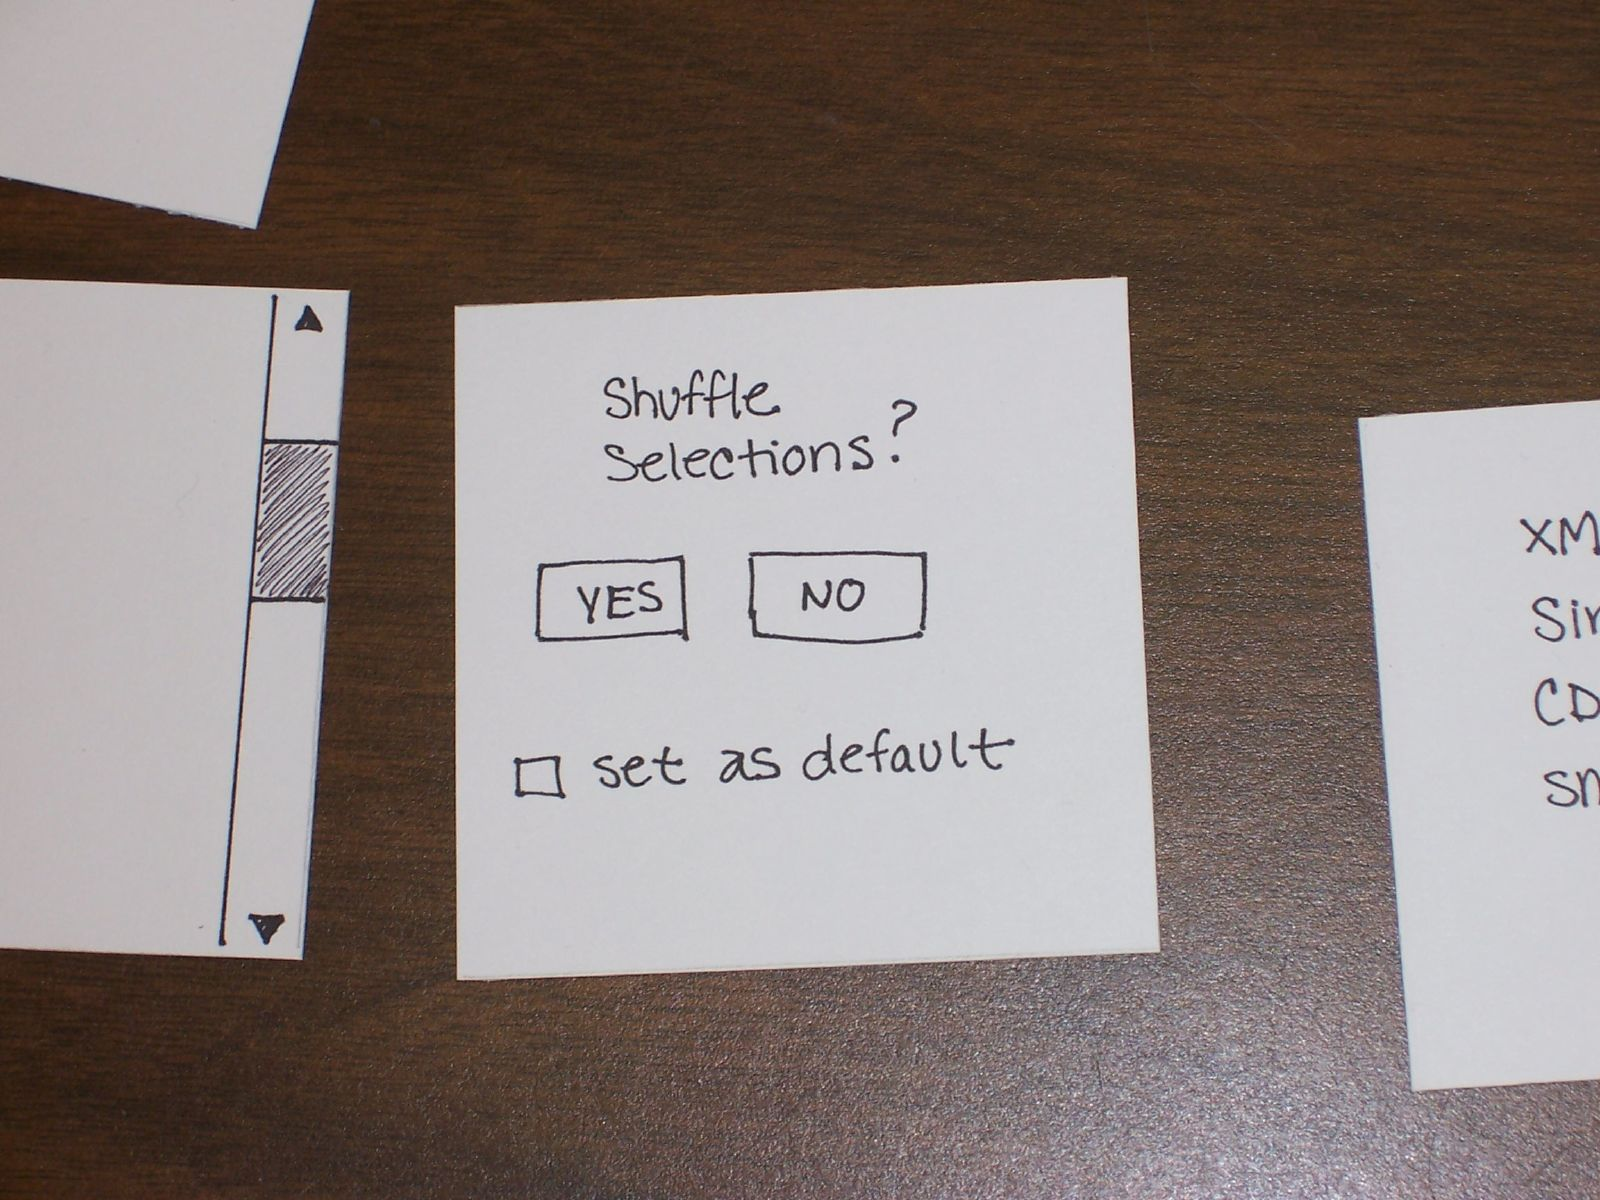 Paper prototype of dialog boxes